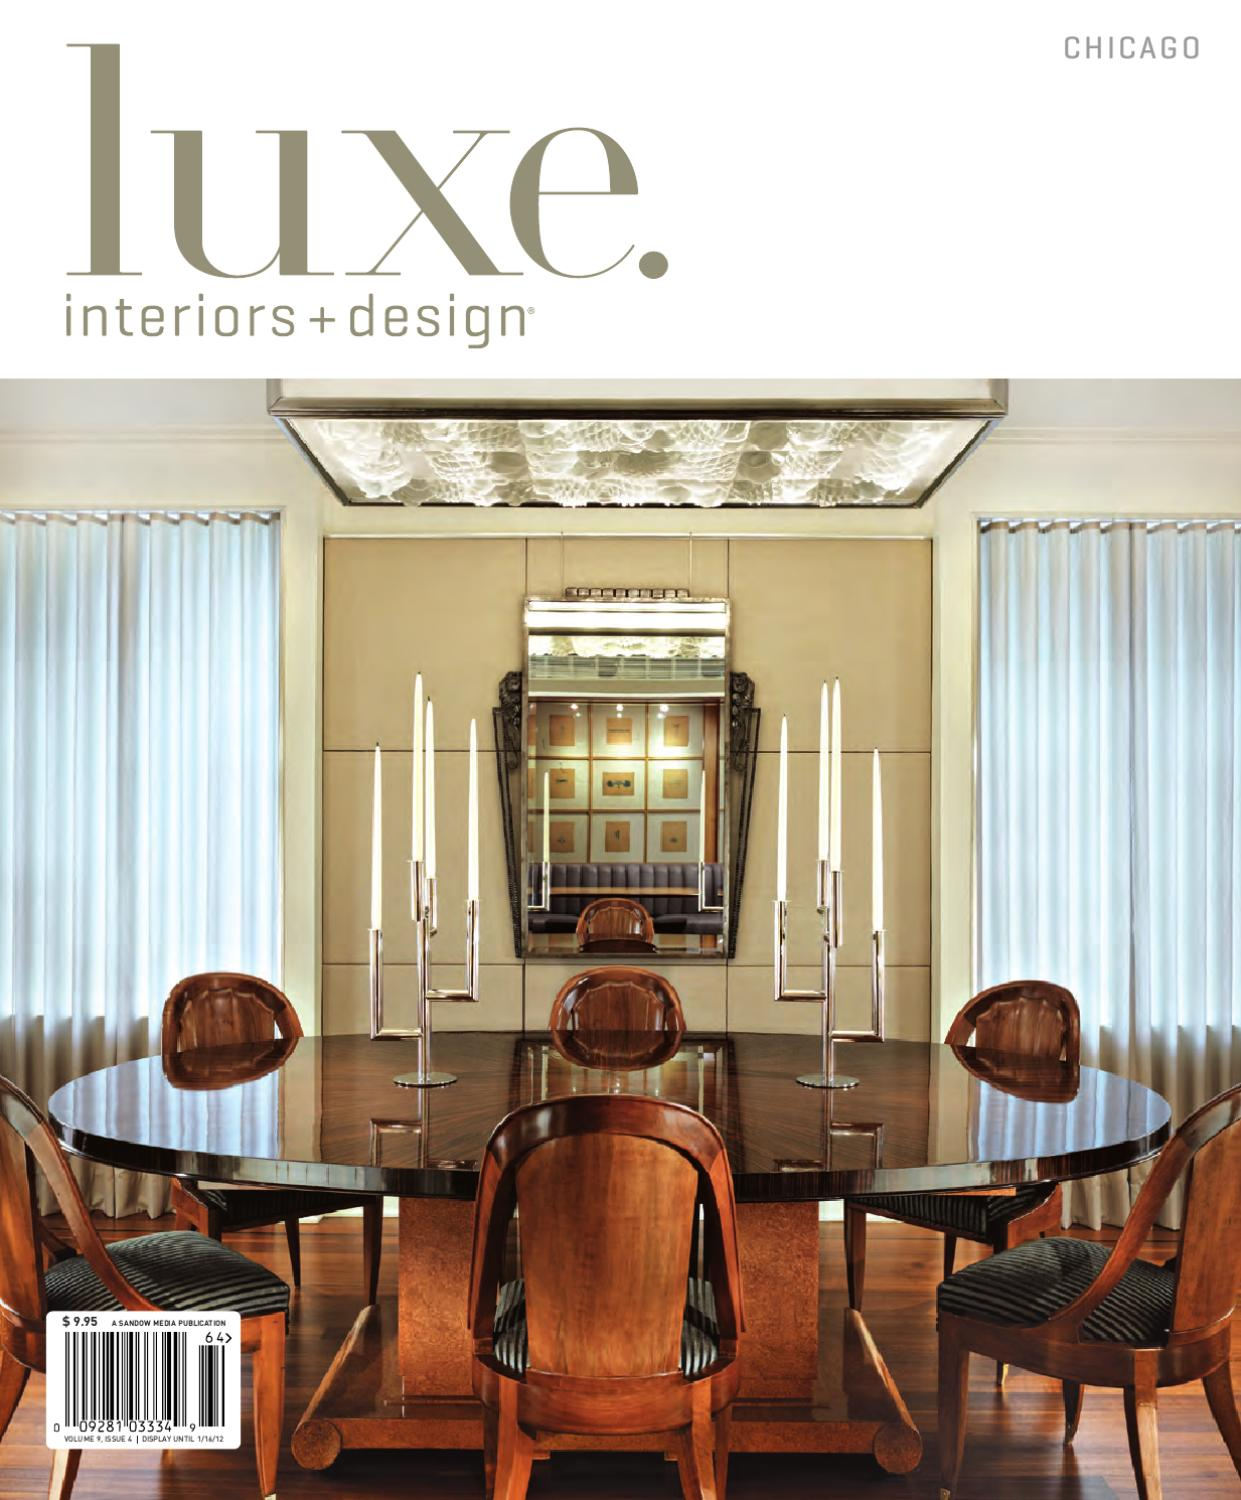 Issuu luxe interiors design chicago 16 by sandow media for Luxe furniture and design